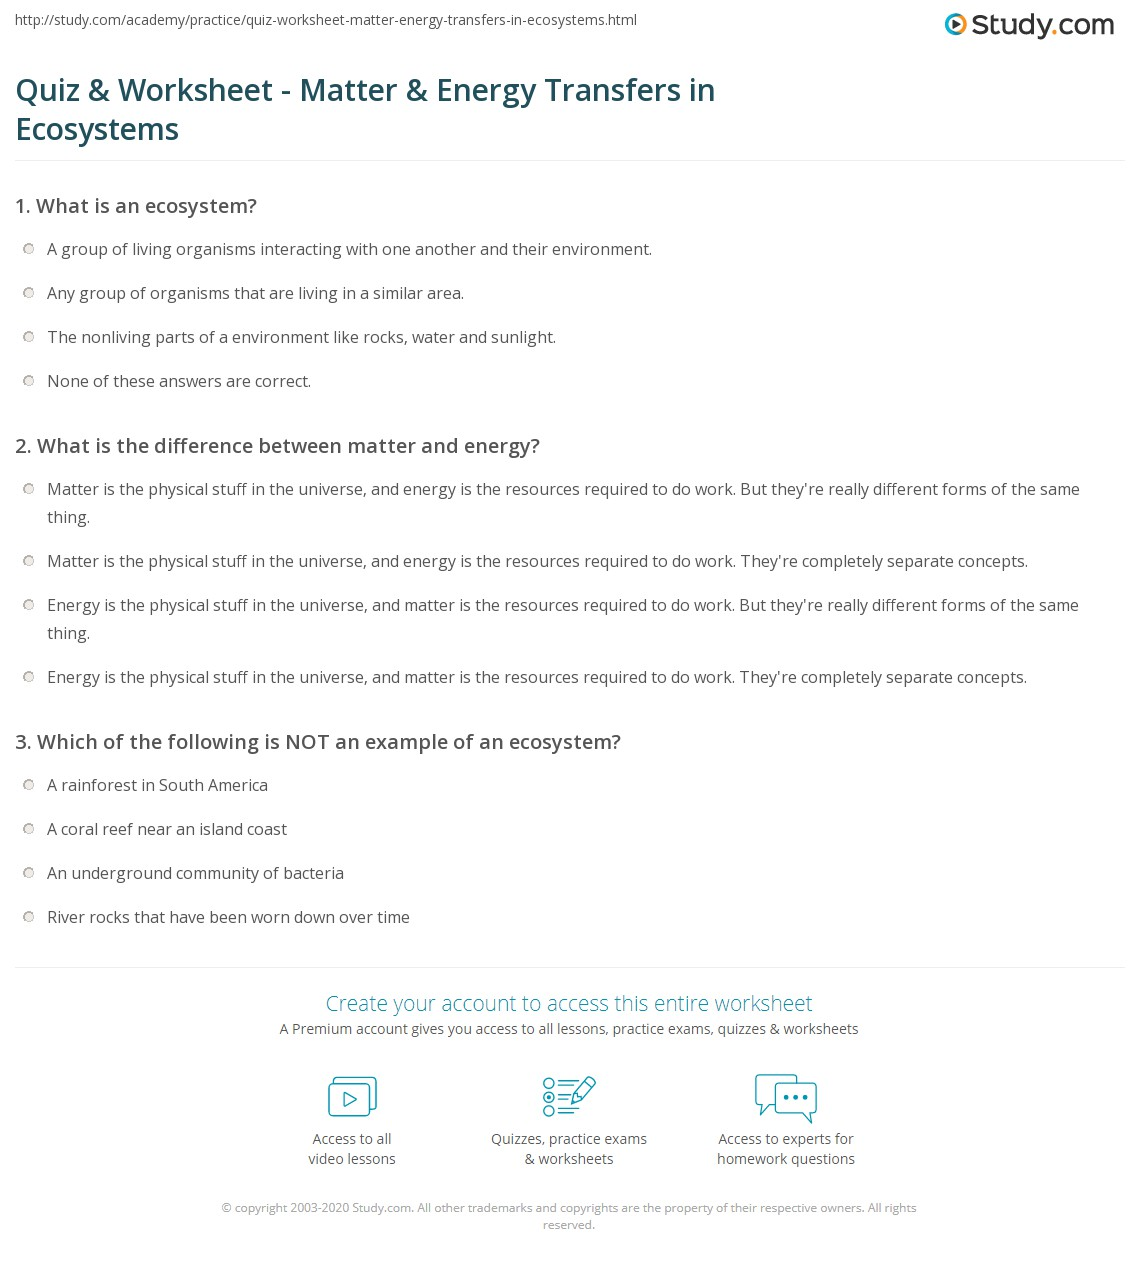 Quiz & Worksheet - Matter & Energy Transfers in Ecosystems | Study.com